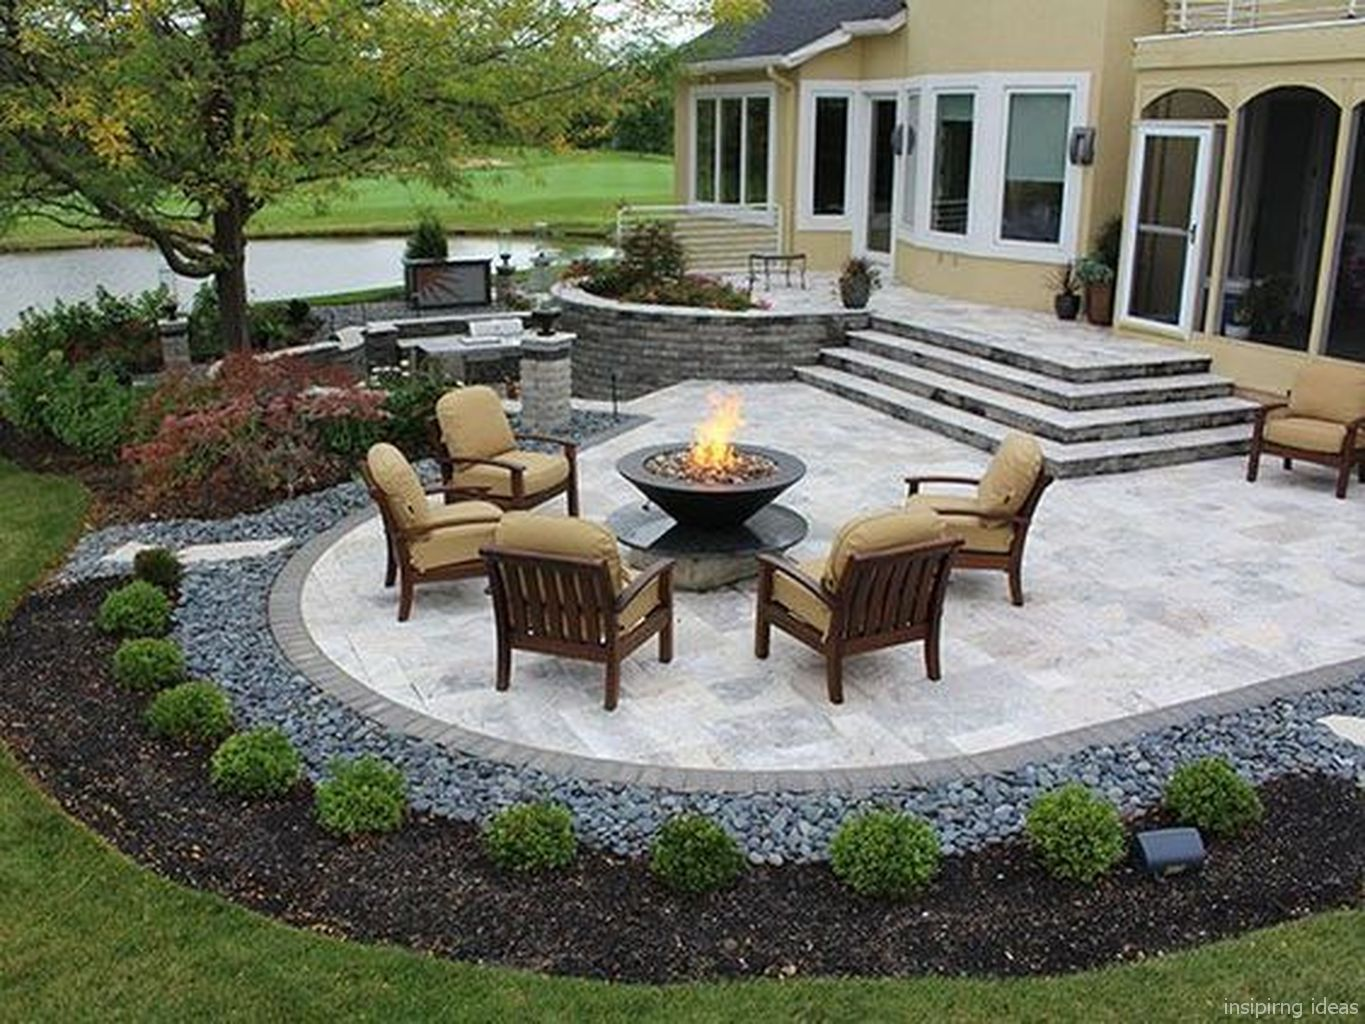 30 Awesome Paver Patio Ideas With Building Tips That Really Pops Creativebackyardrock Gardenideastotry Low Ideas S Patio Landscaping Patio Backyard Patio